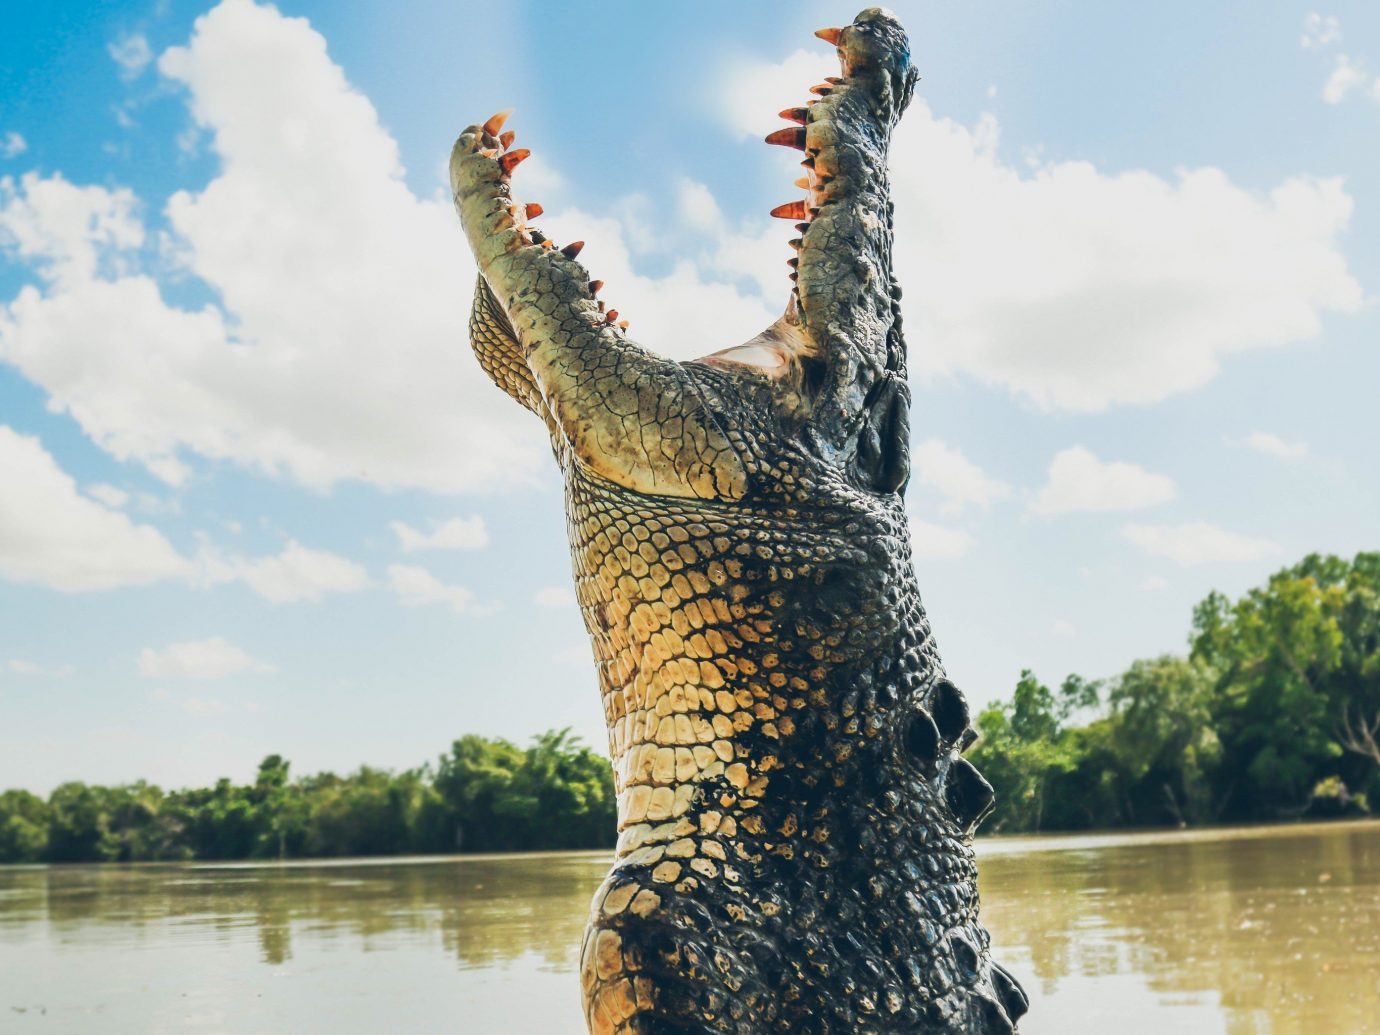 Trip Ideas sky outdoor water tree crocodile crocodilia River Lake Wildlife alligator plant